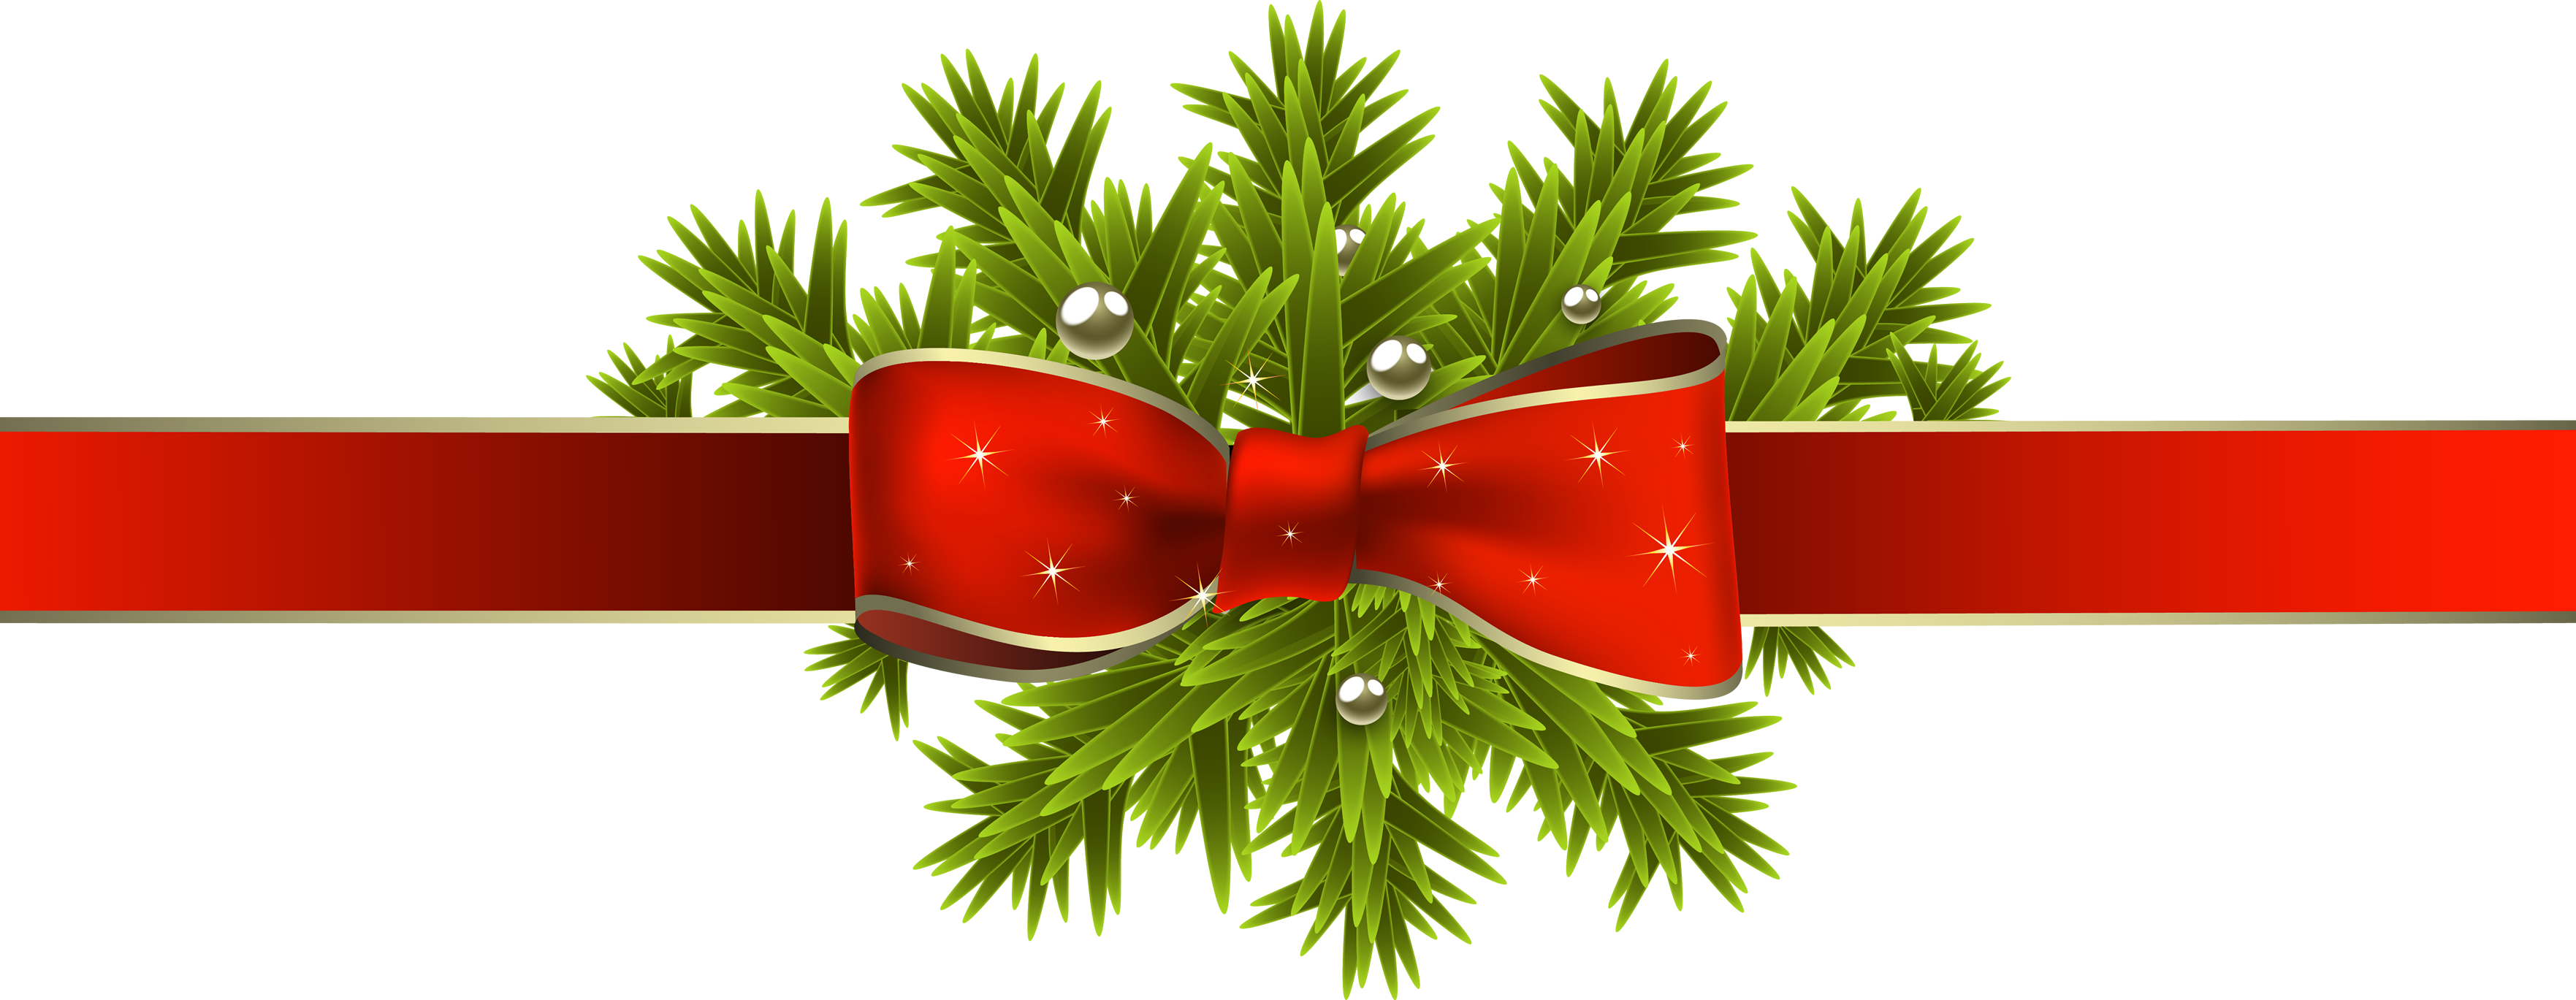 Transparent Christmas Decoration Png Clipart: Christmas Decoration PNG